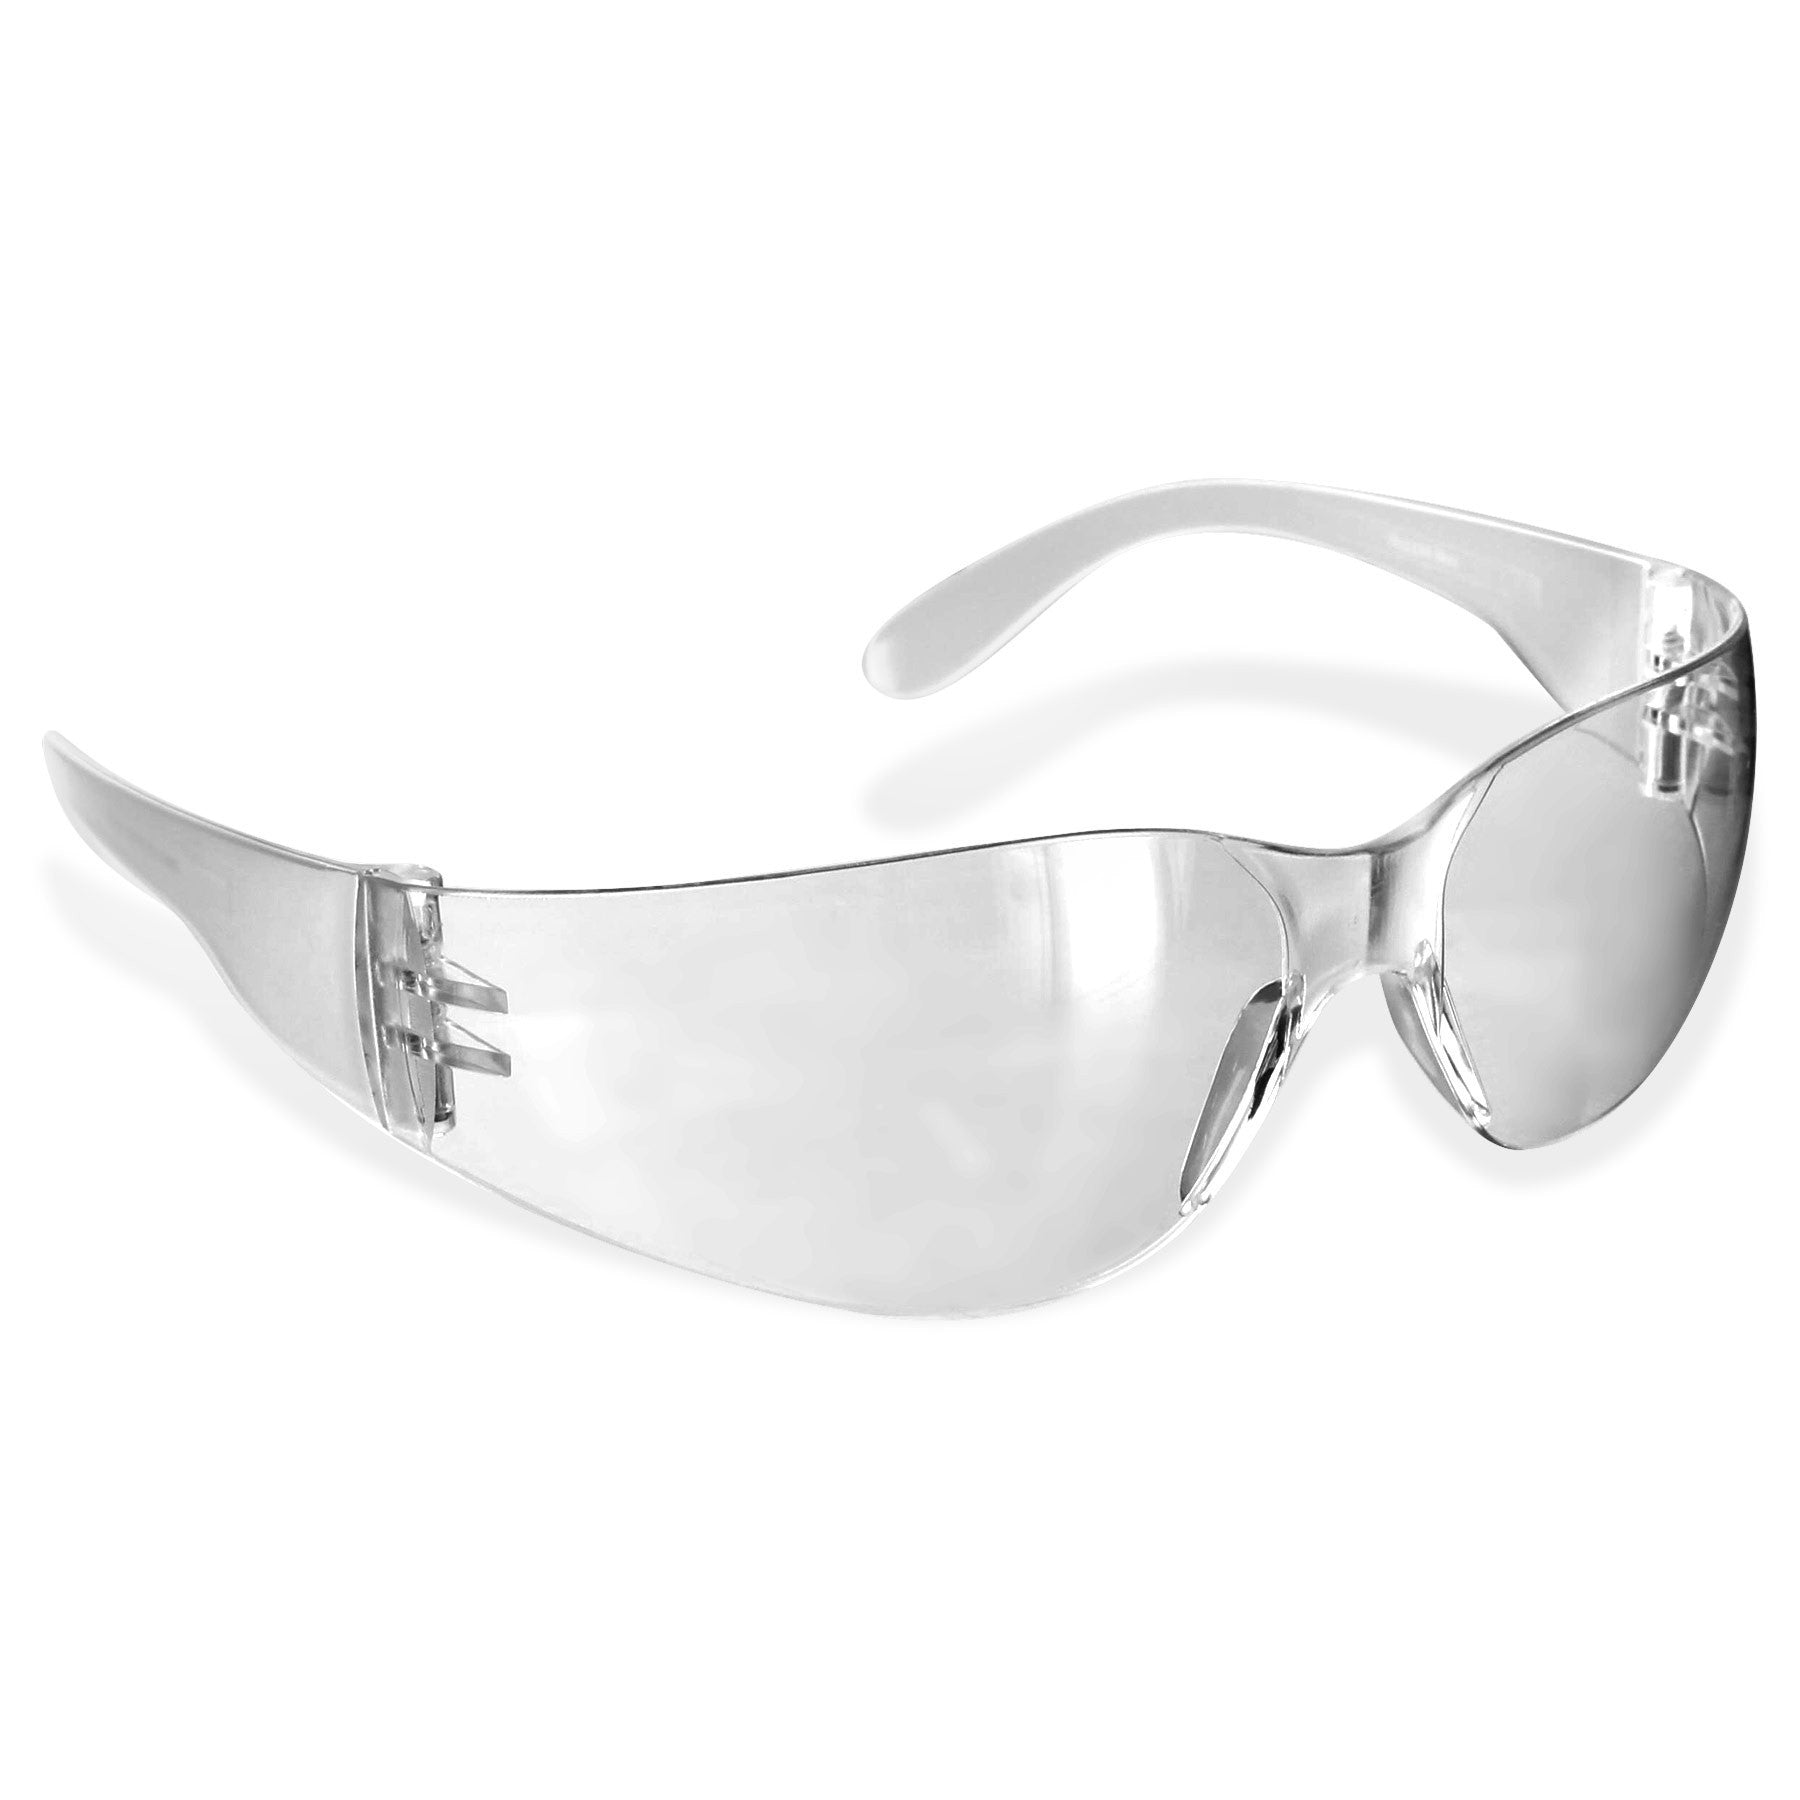 Supreme Safety Glasses - Clear Lens EN166:2001